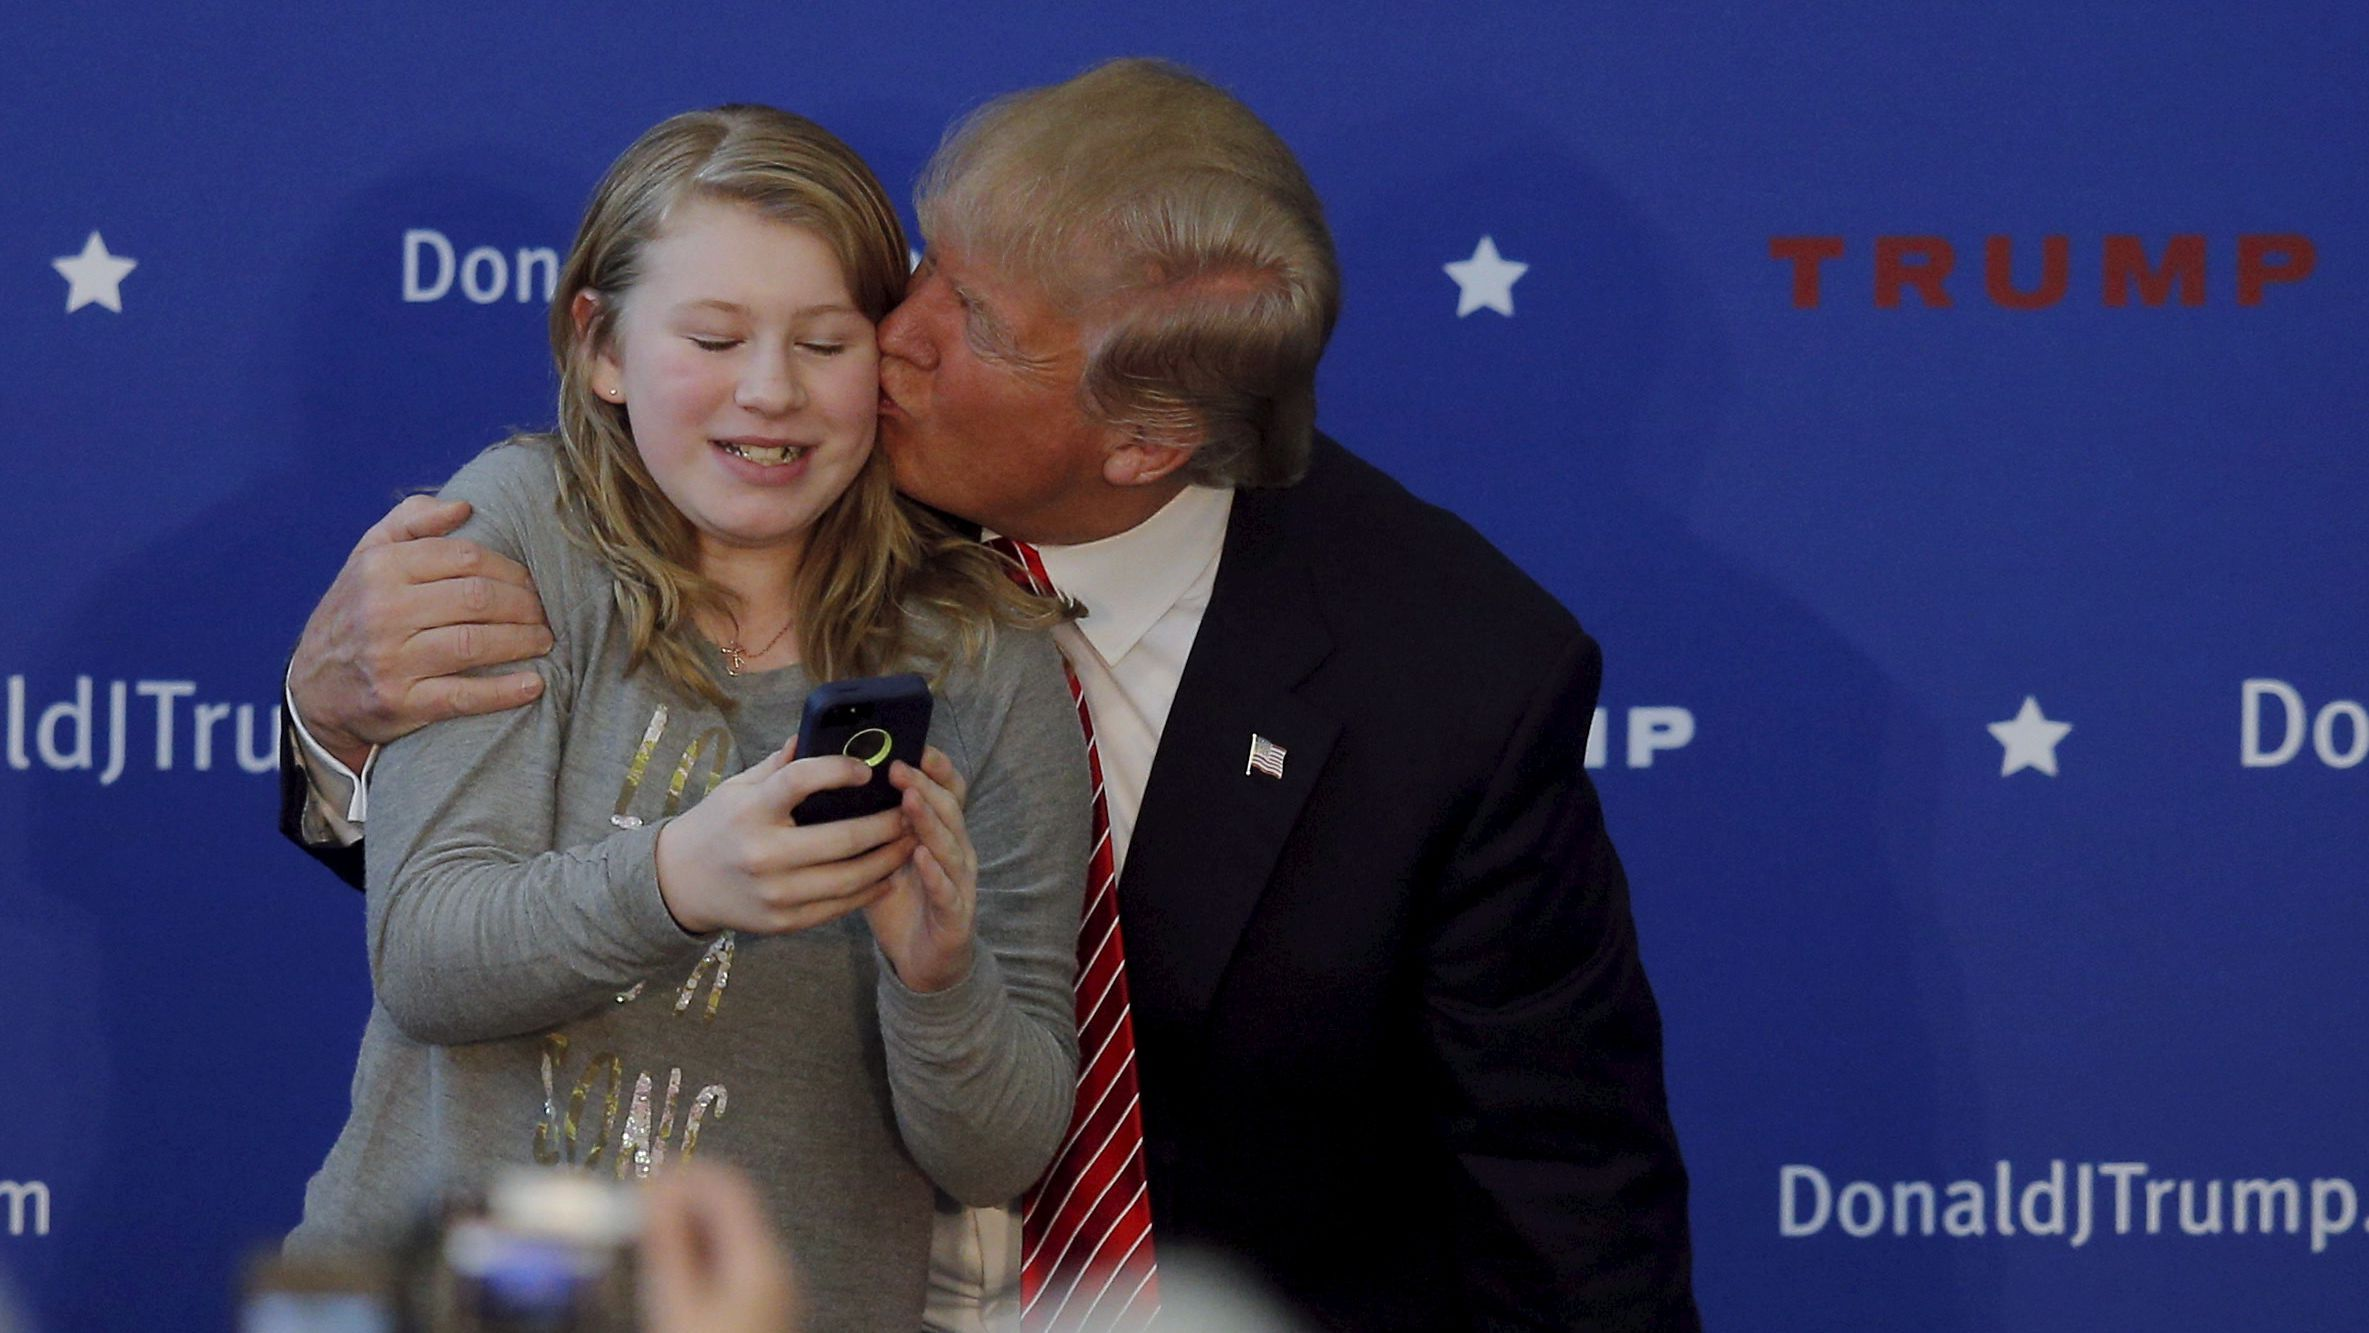 donald trump kisses young supporter at rally